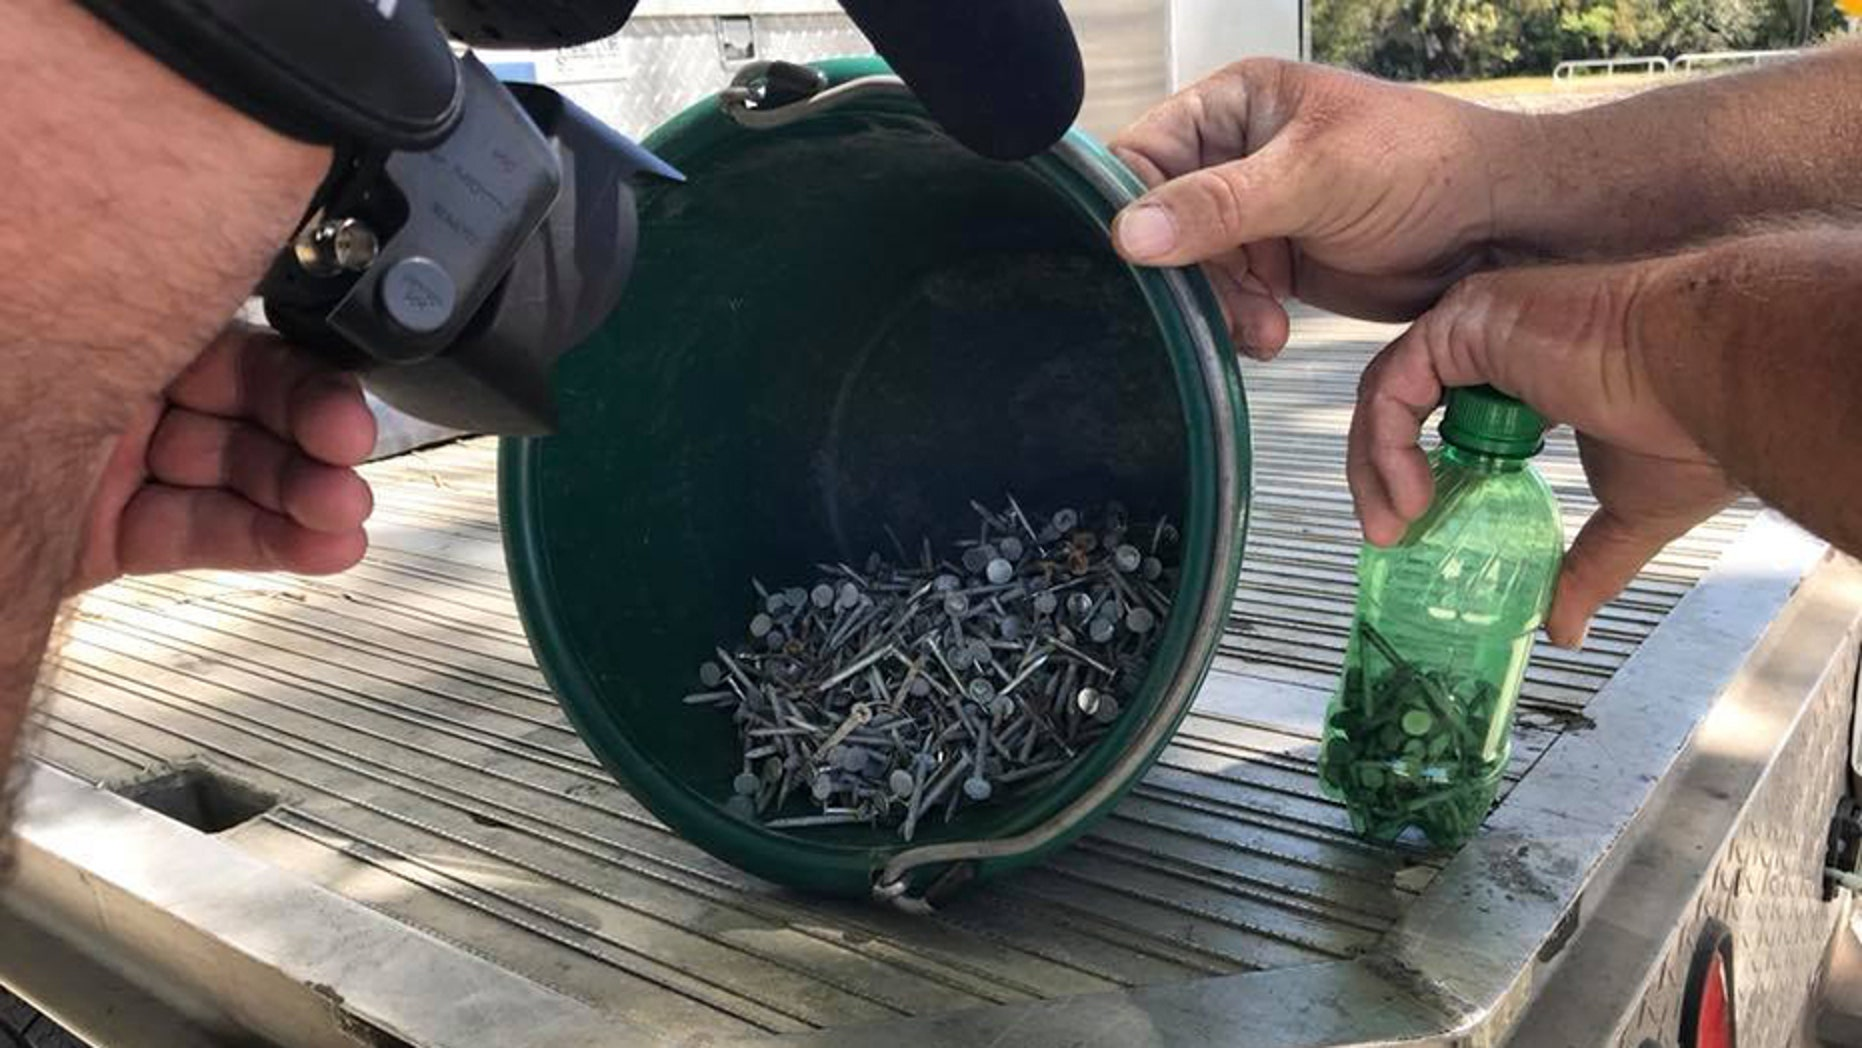 - Authorities in Oak Hill in Florida say someone is dumping nails along U.S. 1, and they're doing it on purpose.